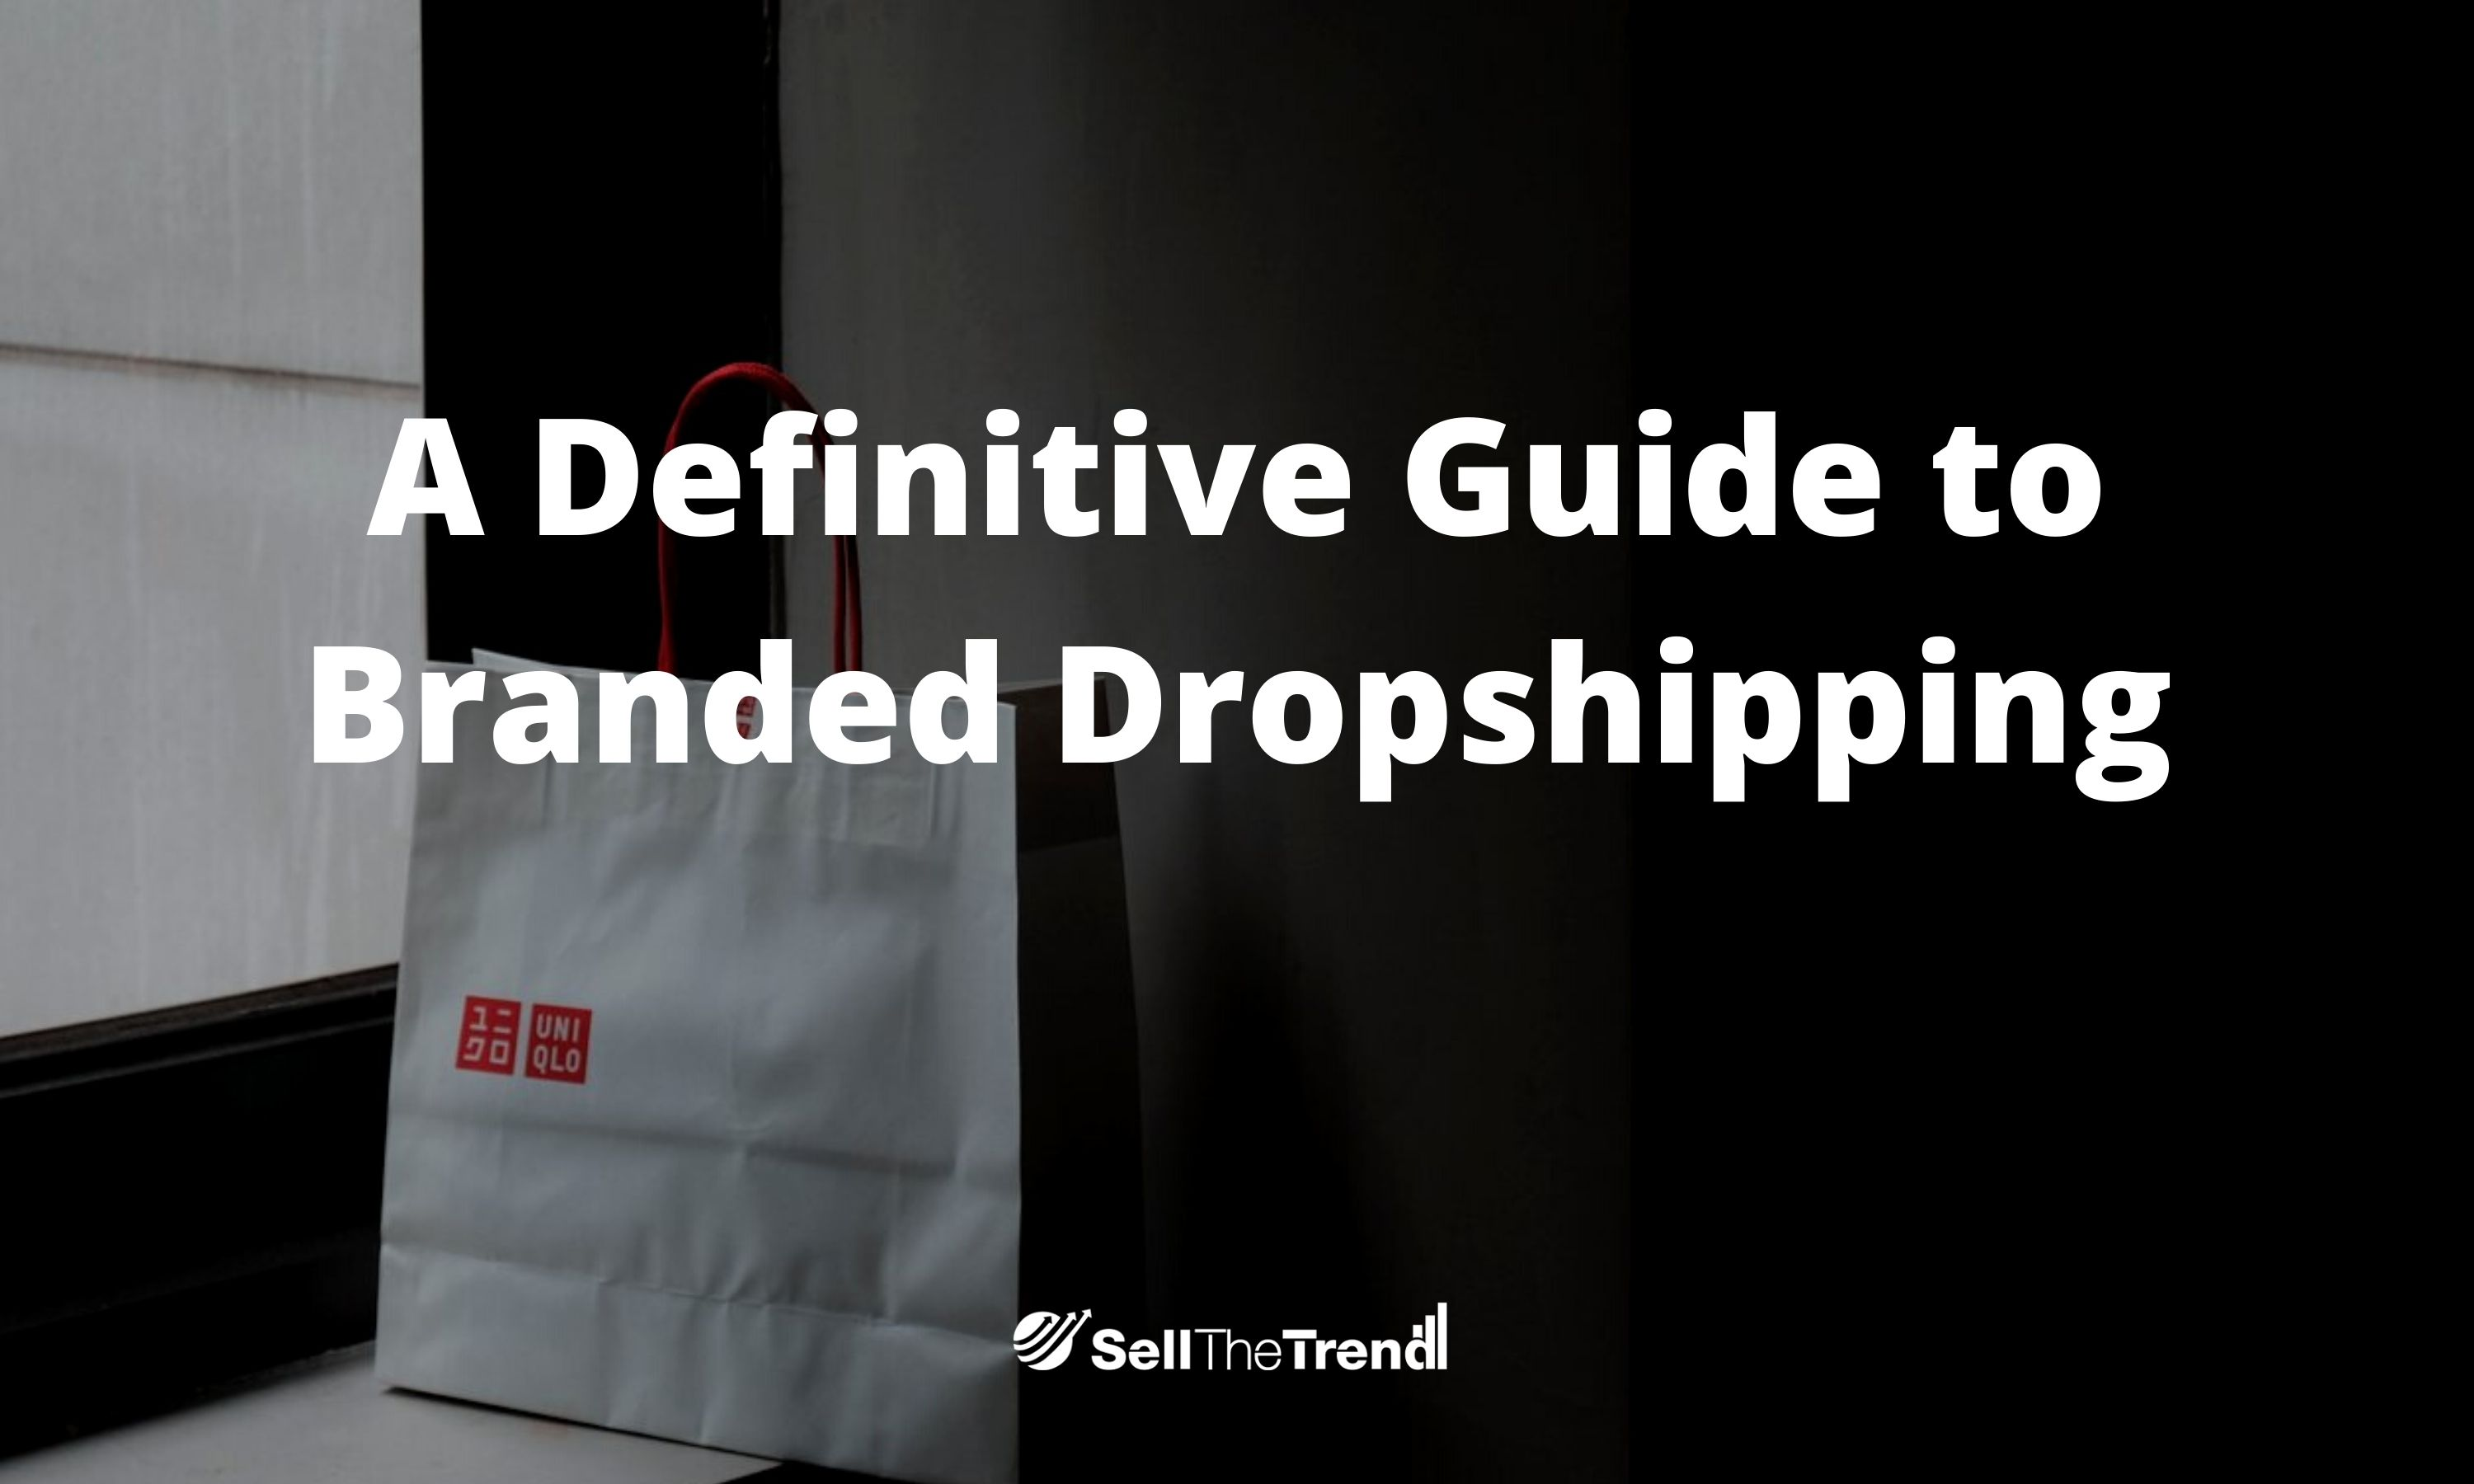 A definitive Guide to Branded Dropshipping